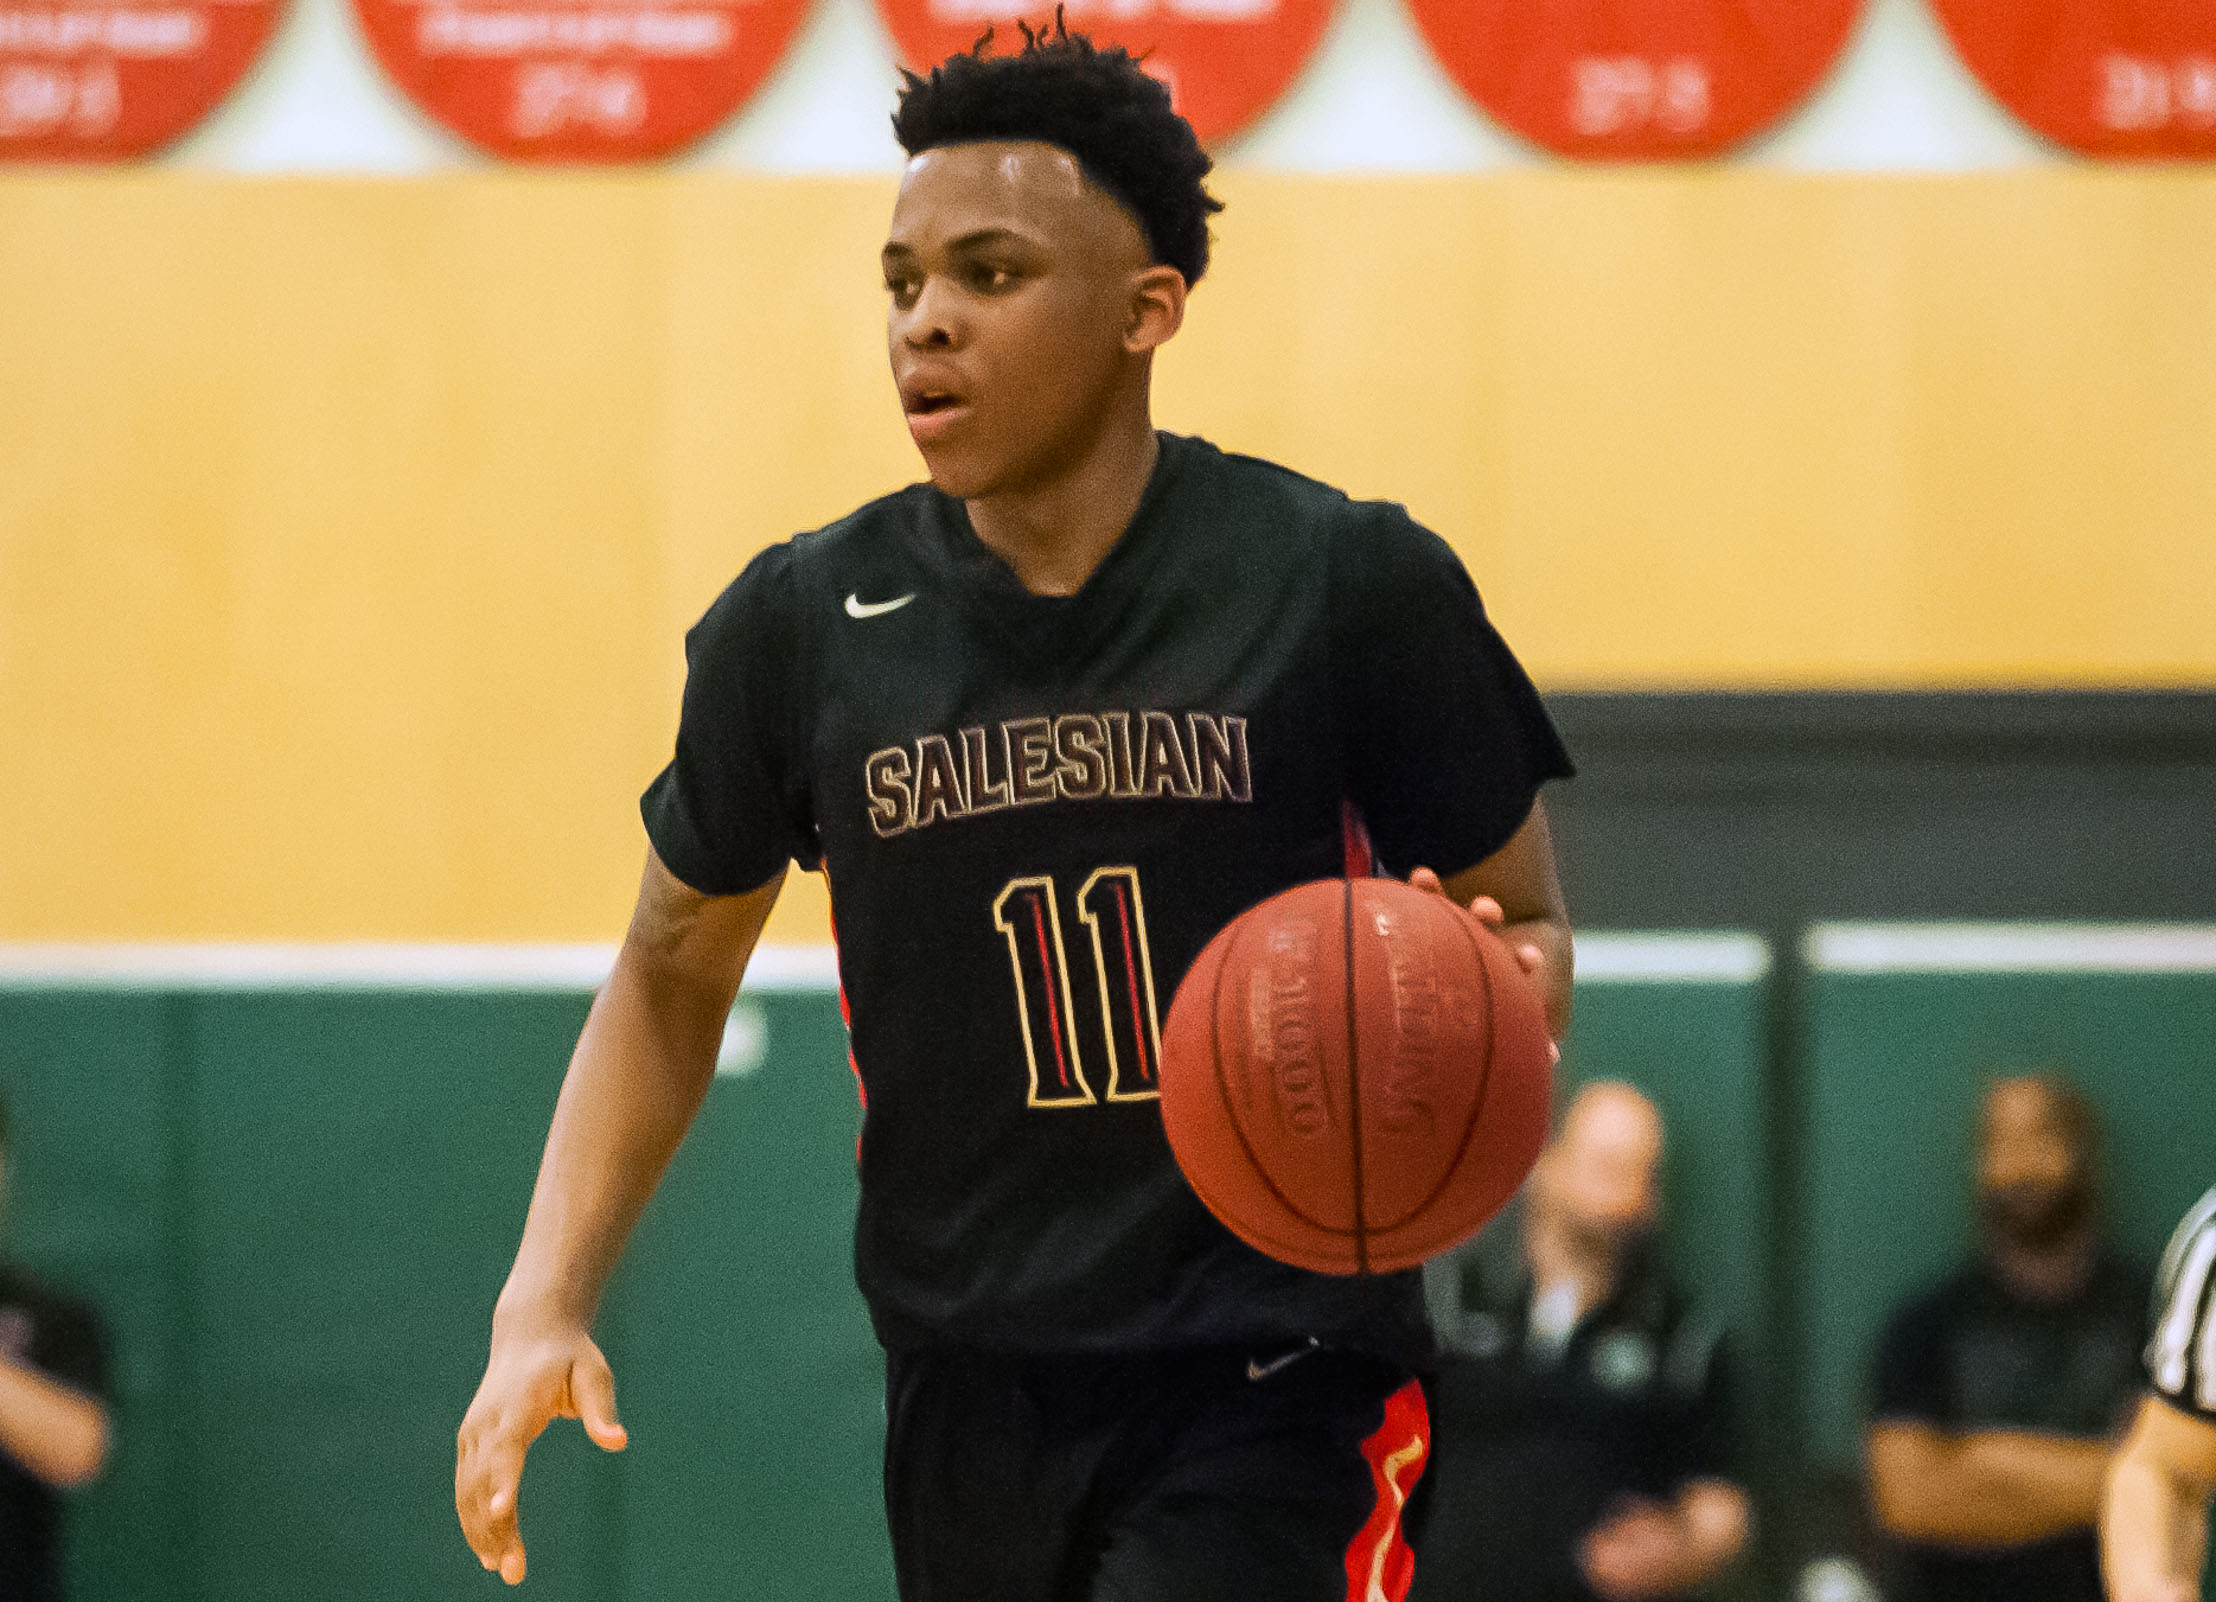 James Akinjo, Salesian